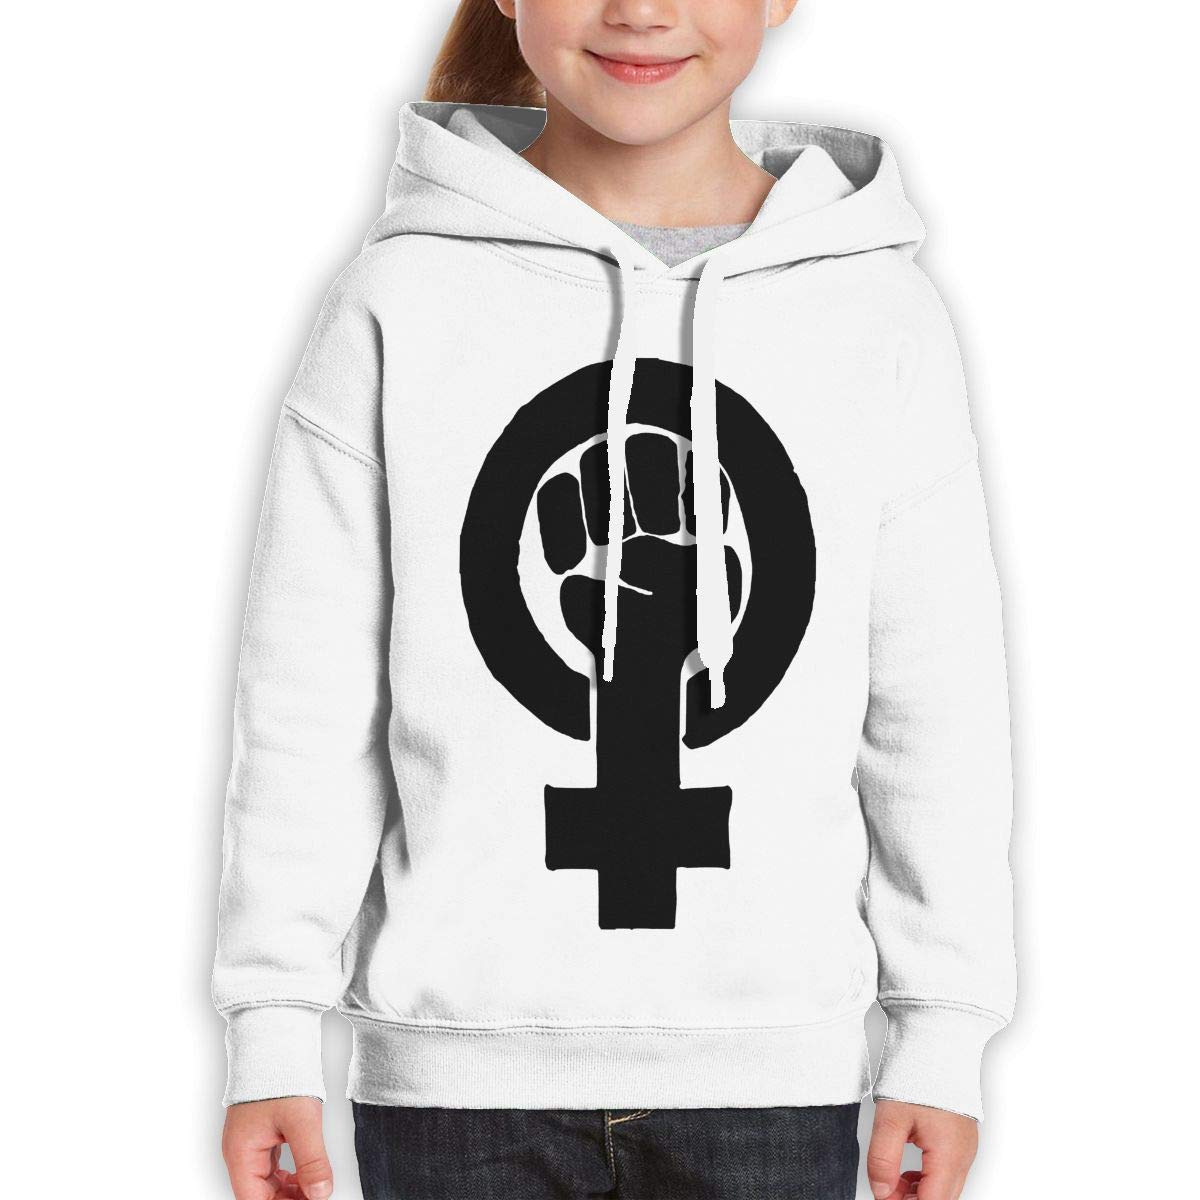 Xxxx Dtjscl Boys Girls Feminism Teen Youth Hoodie Gray